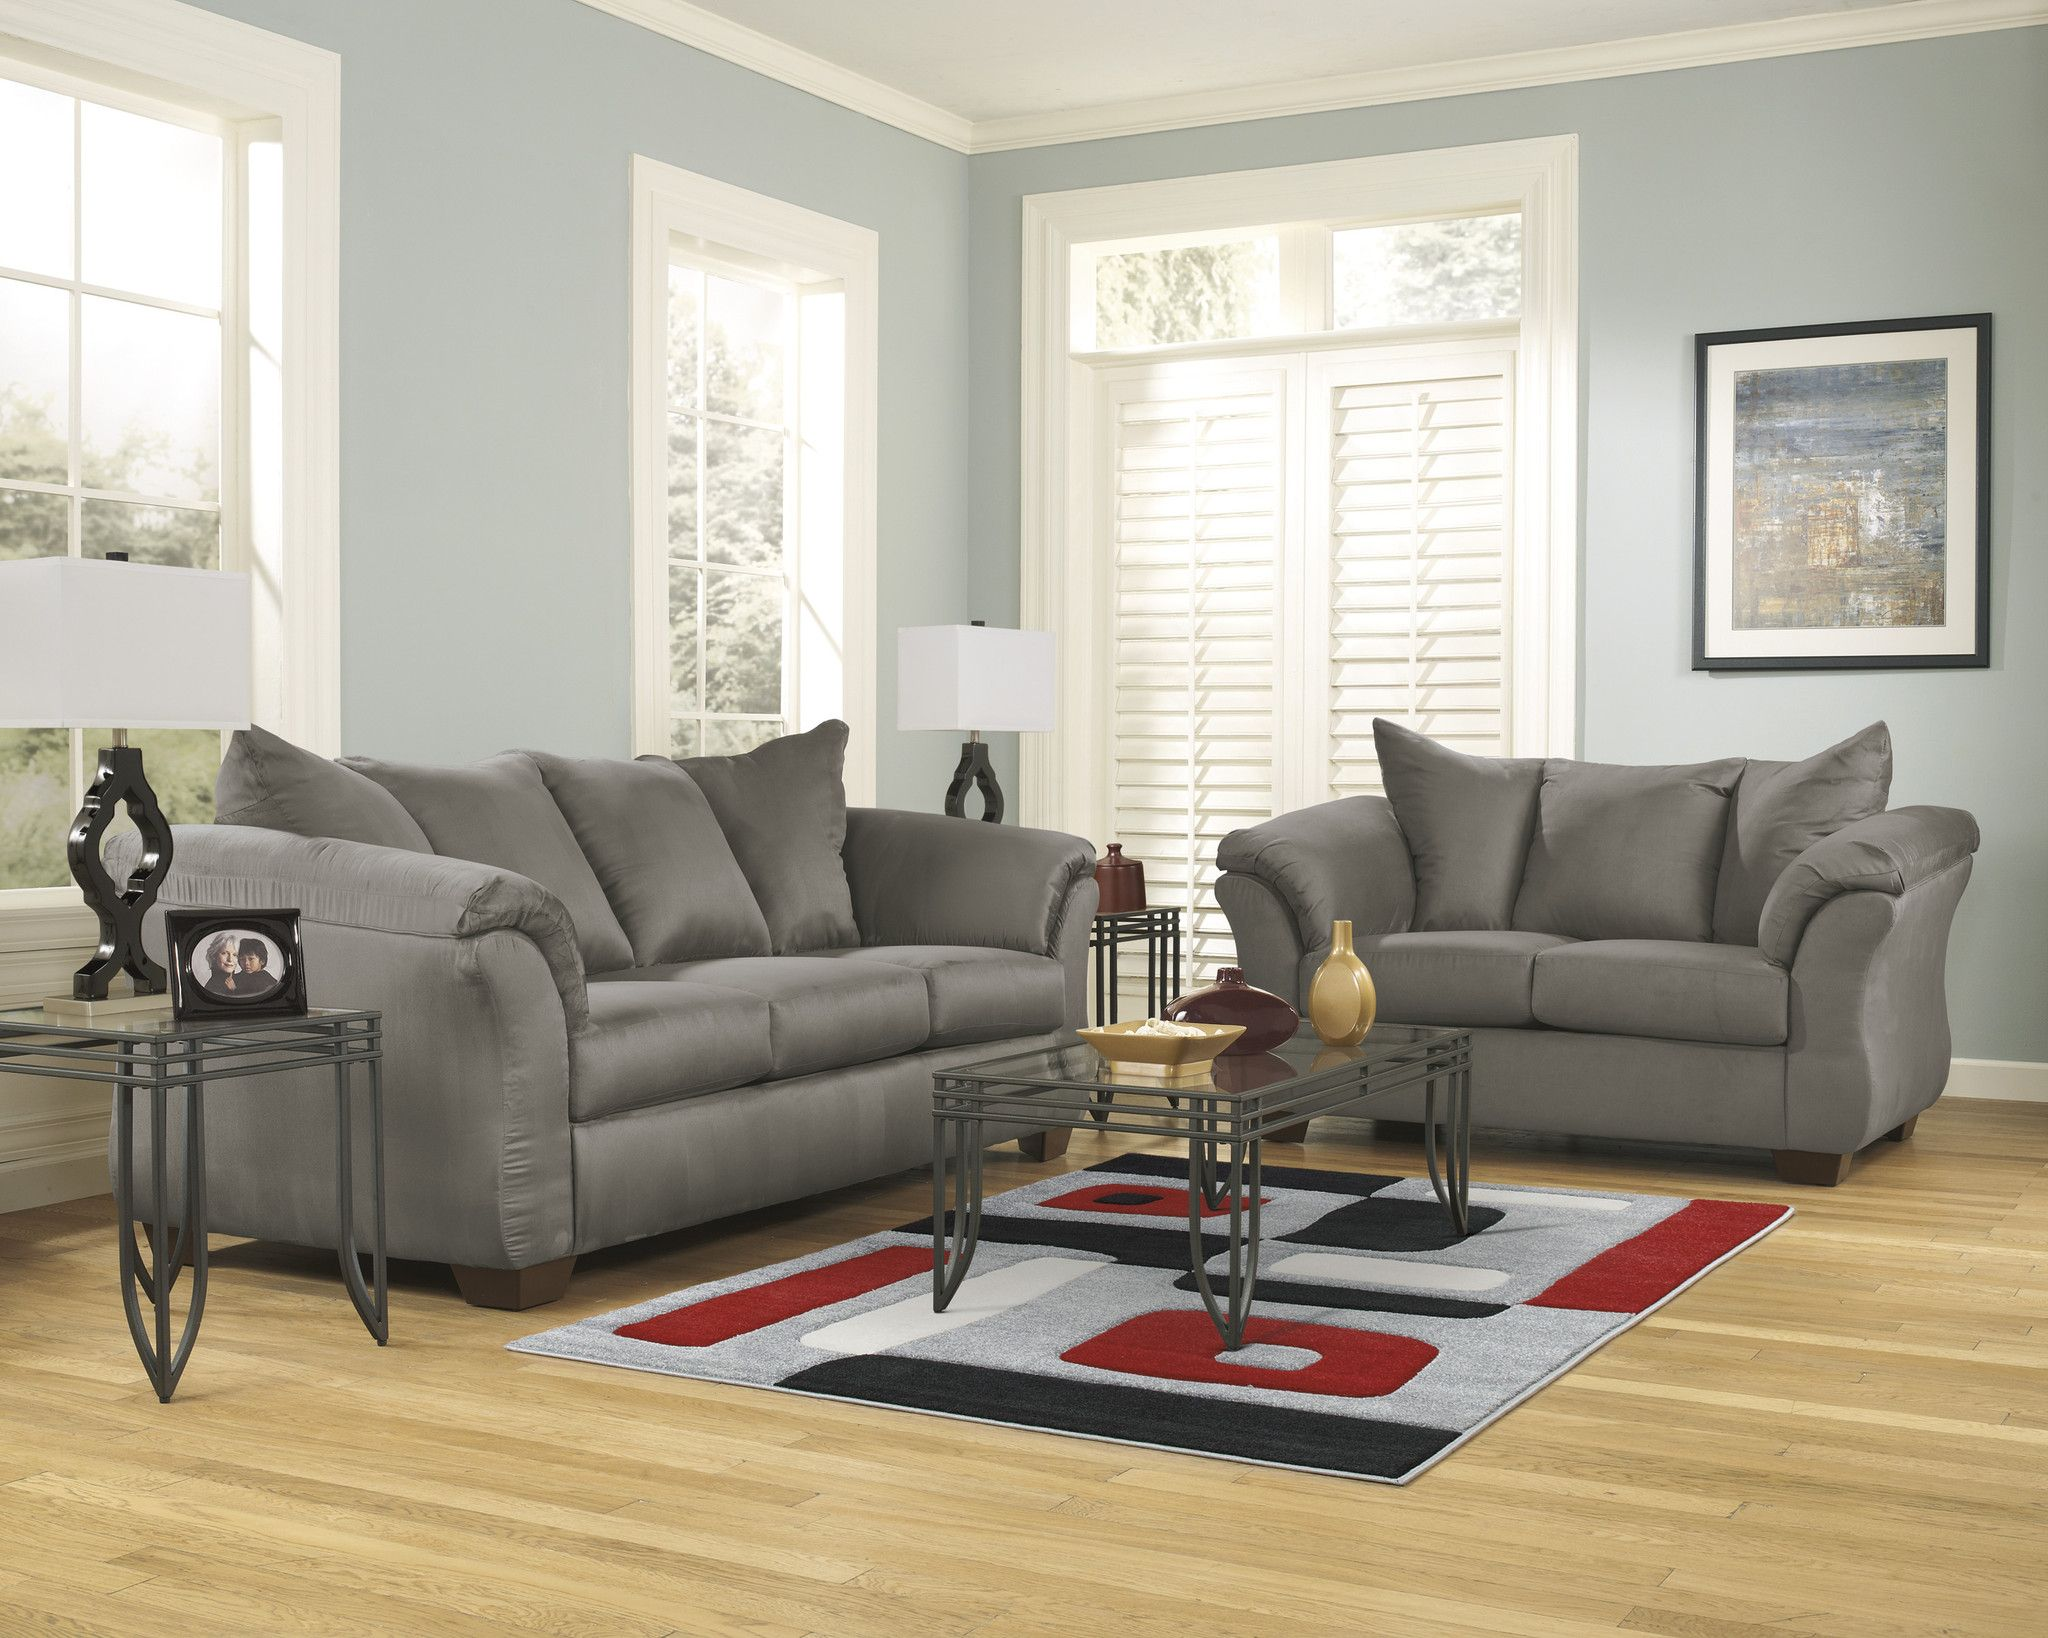 Get Your Darcy   Mocha   Sofa U0026 Loveseat At Sleep Shoppe And Furniture  Gallery, Hutchinson KS Furniture Store.